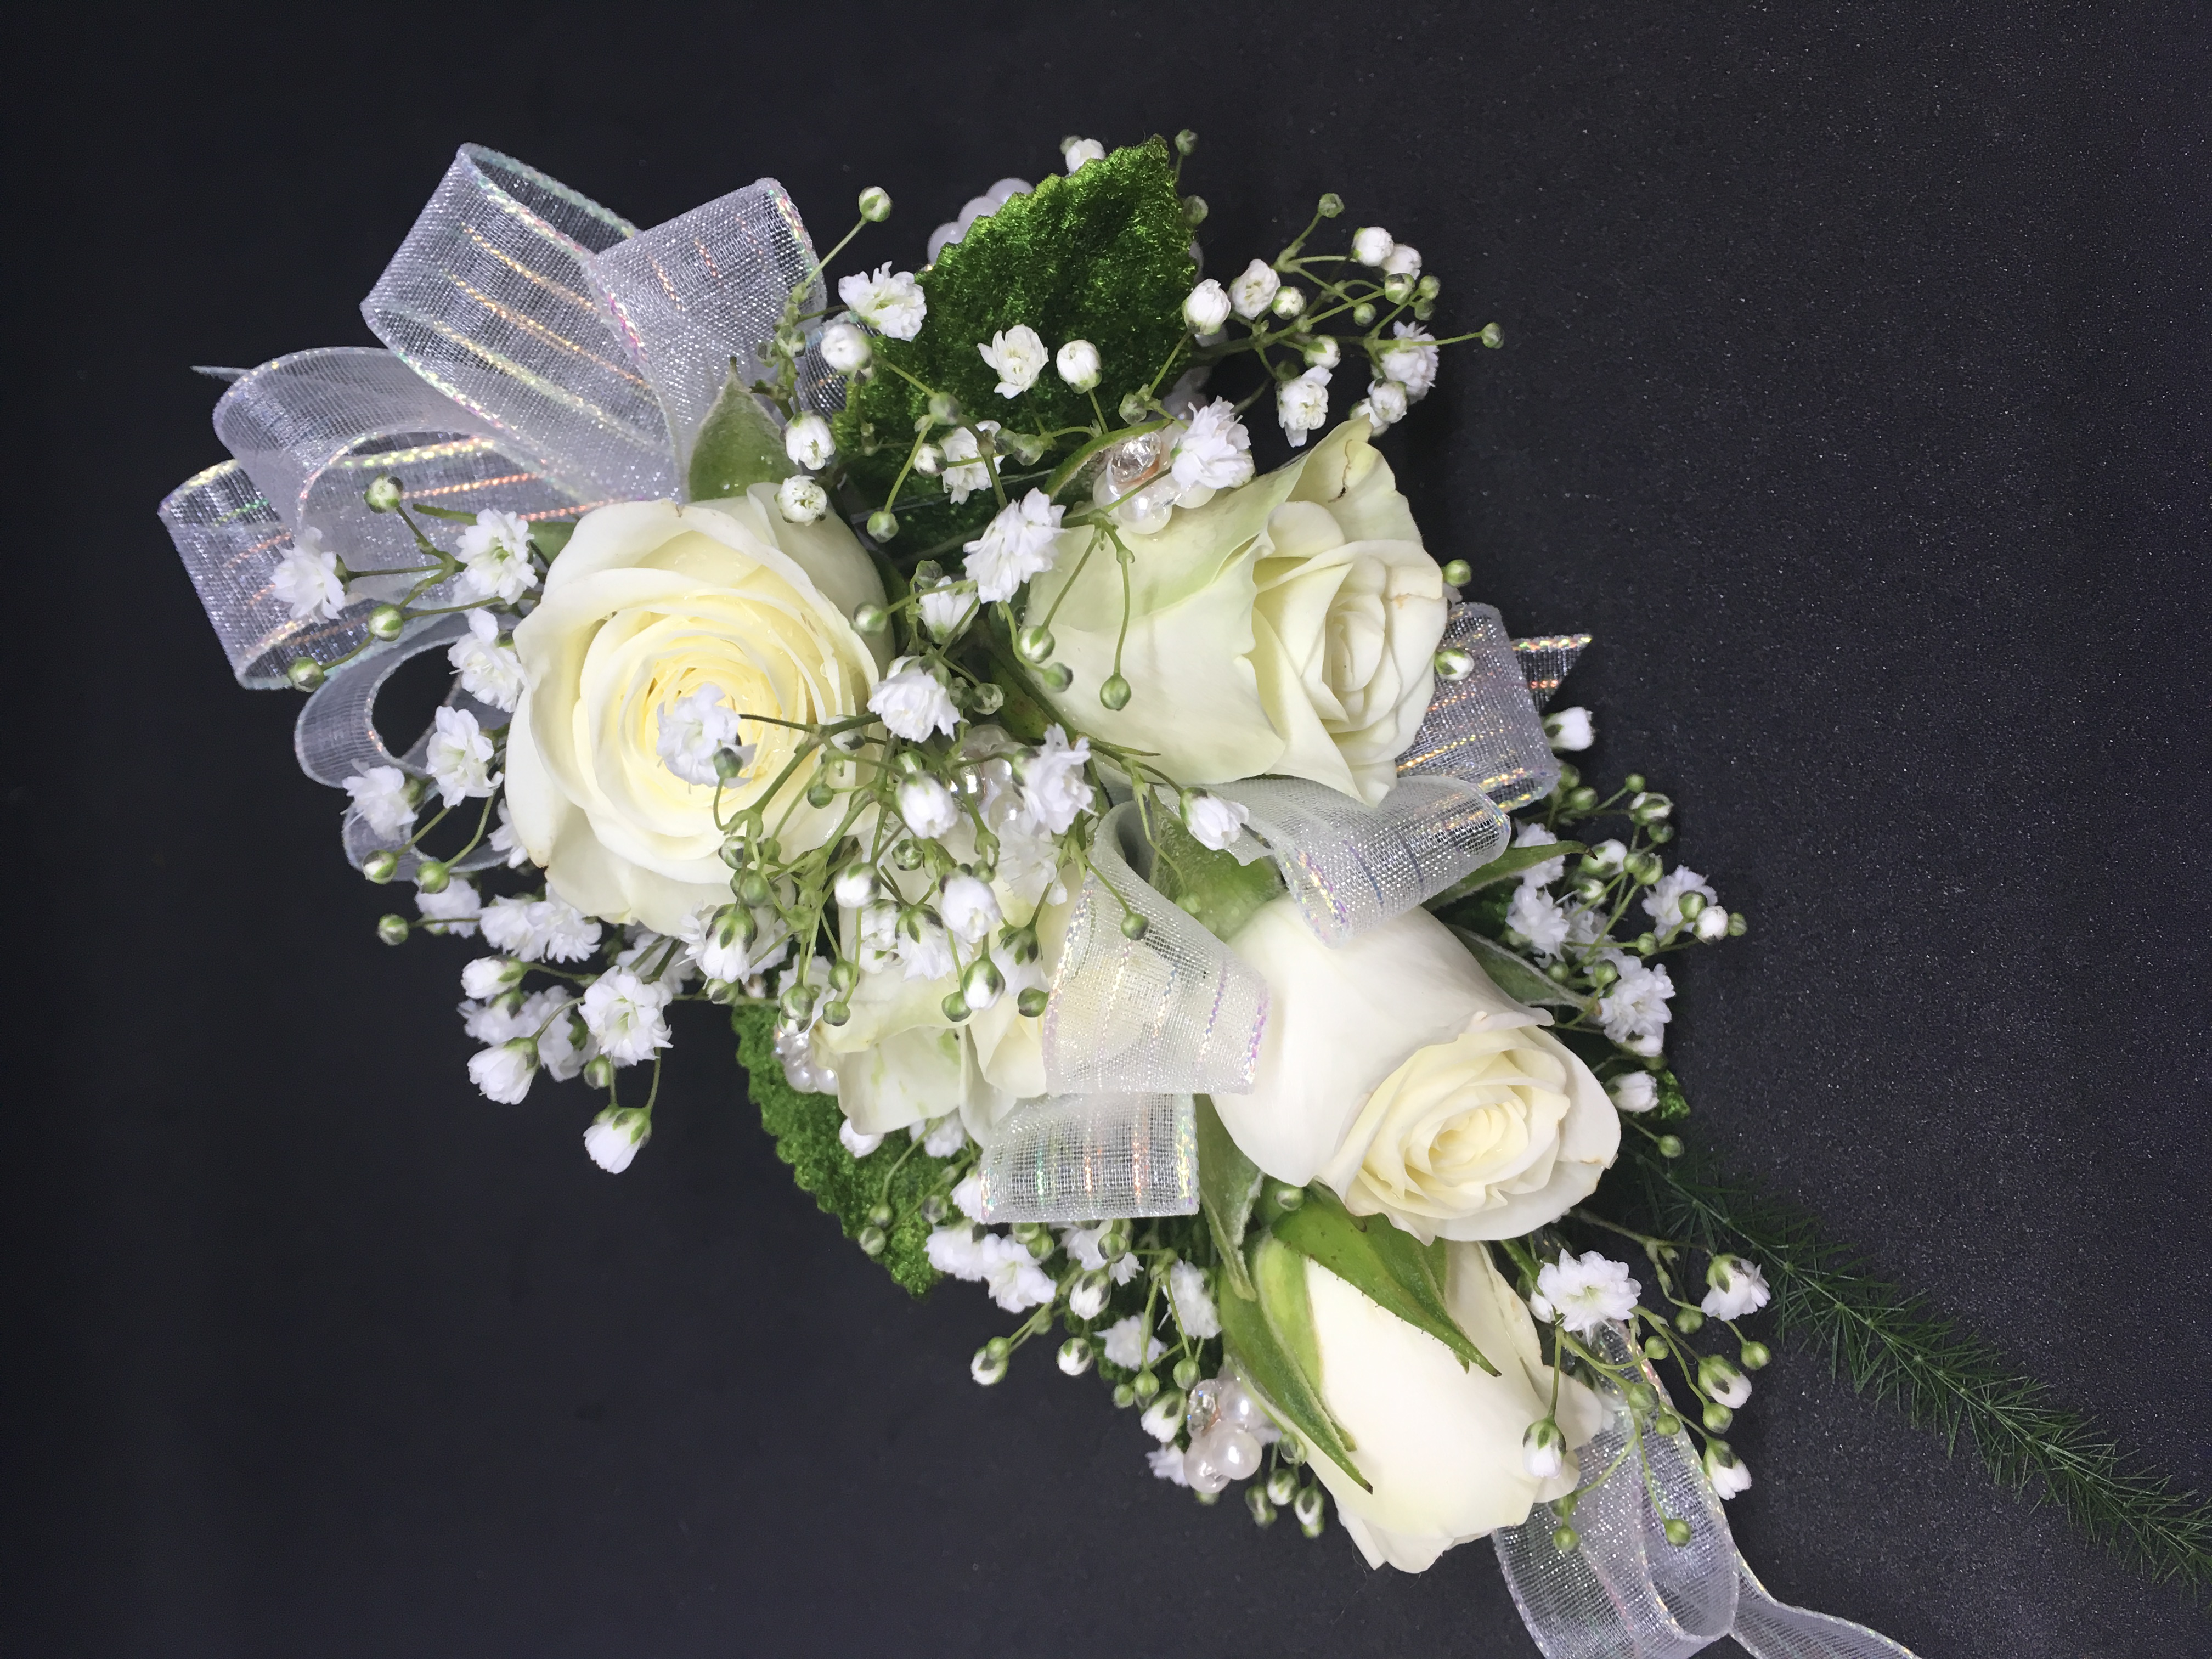 White Roses and irridescent